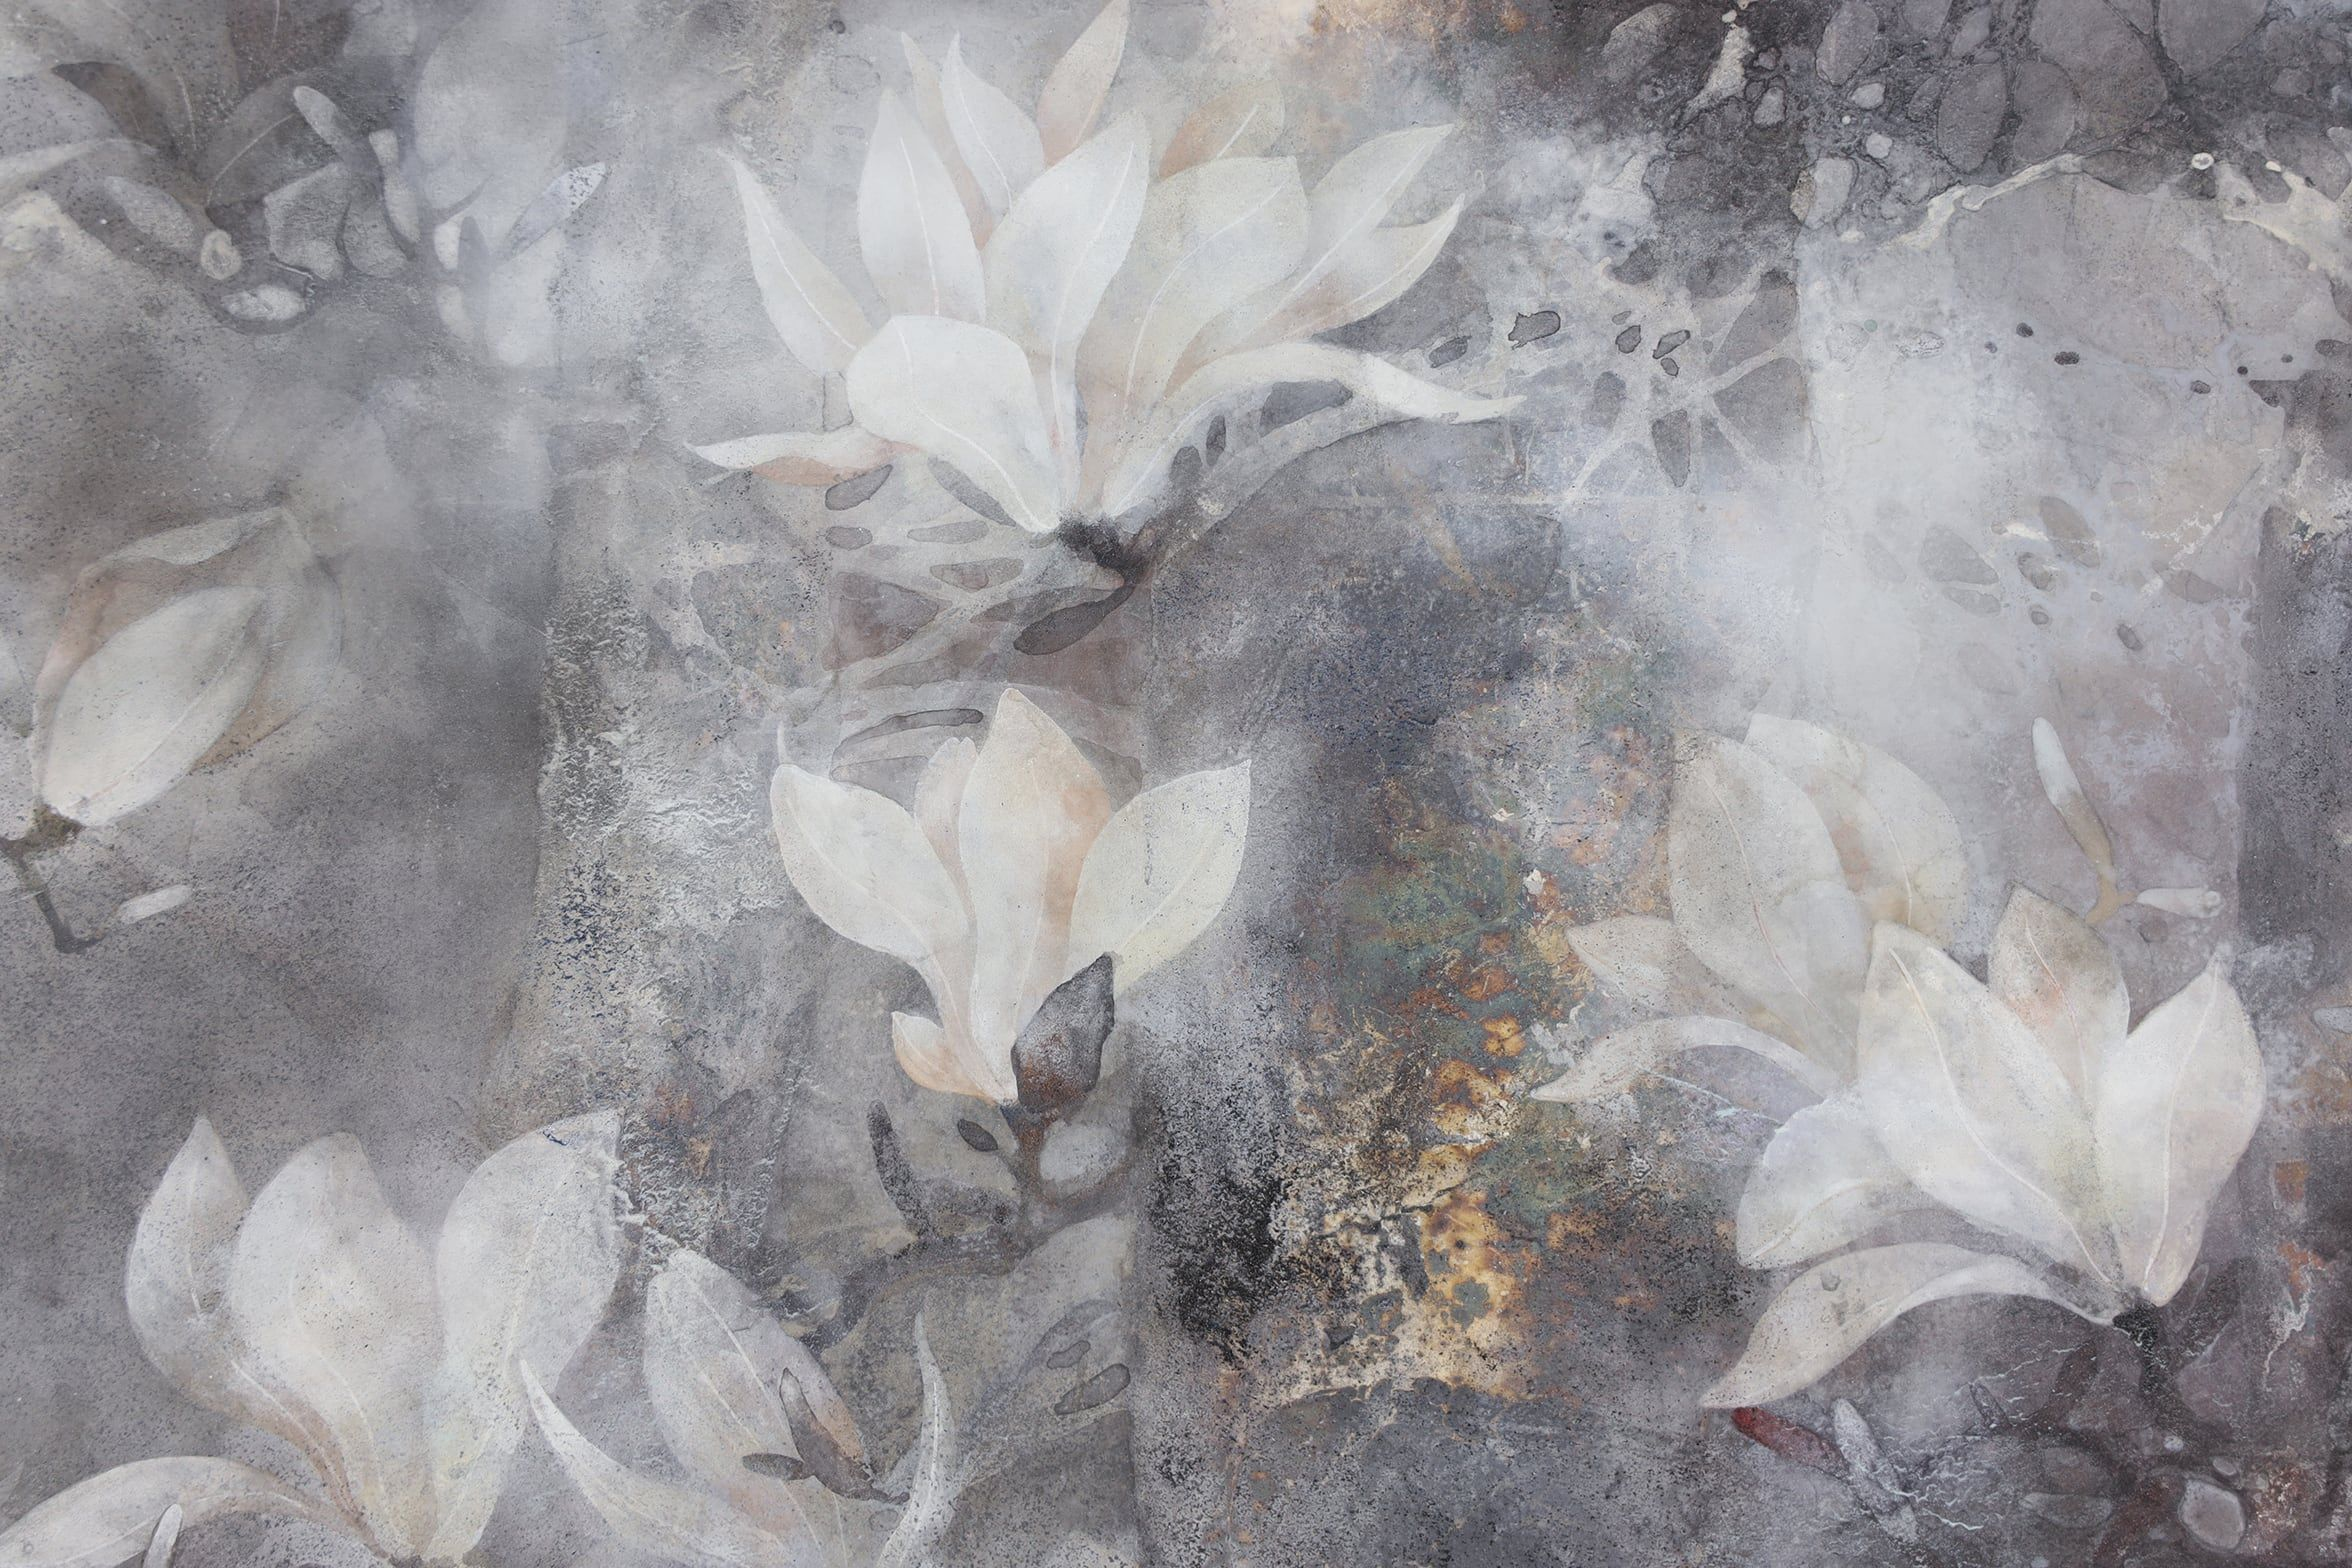 temps - Chen Yiching - Contemporary painting - detail 3